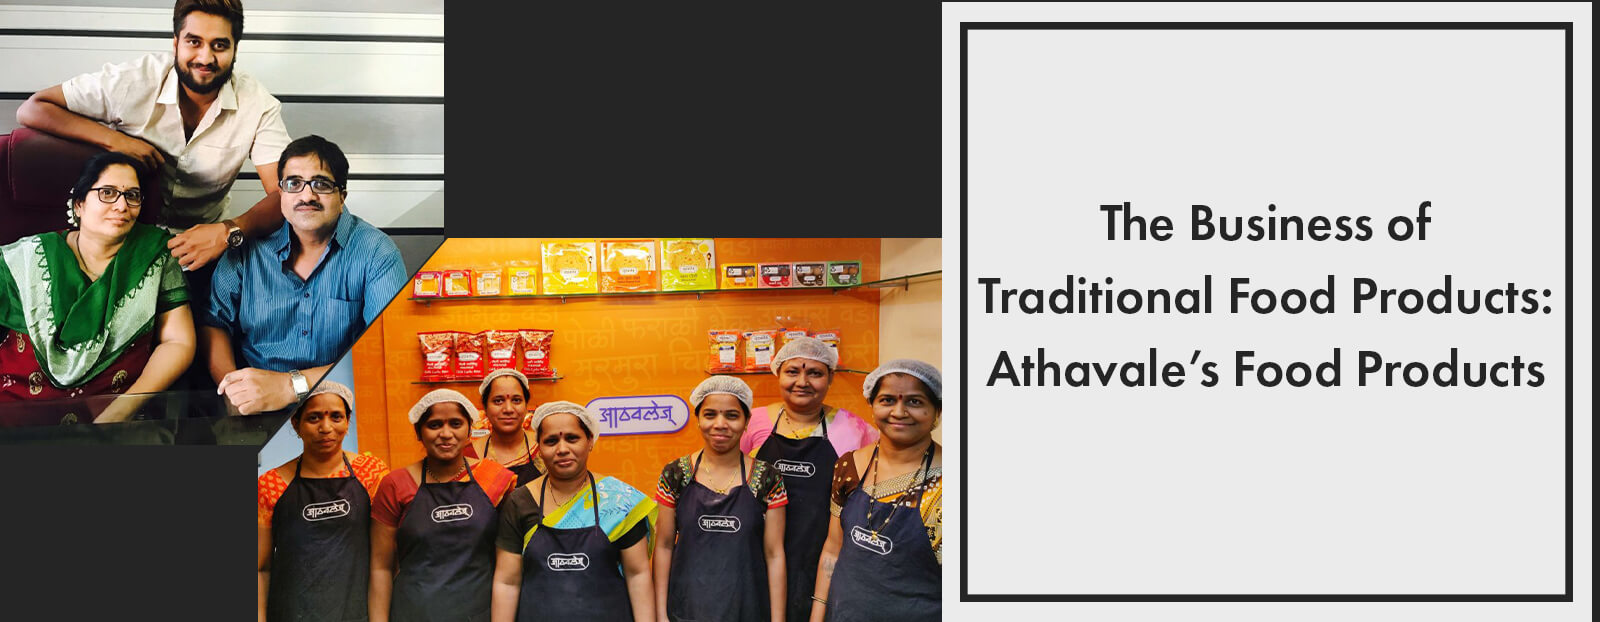 The Business of Traditional Food Products: Athavale's Food Products